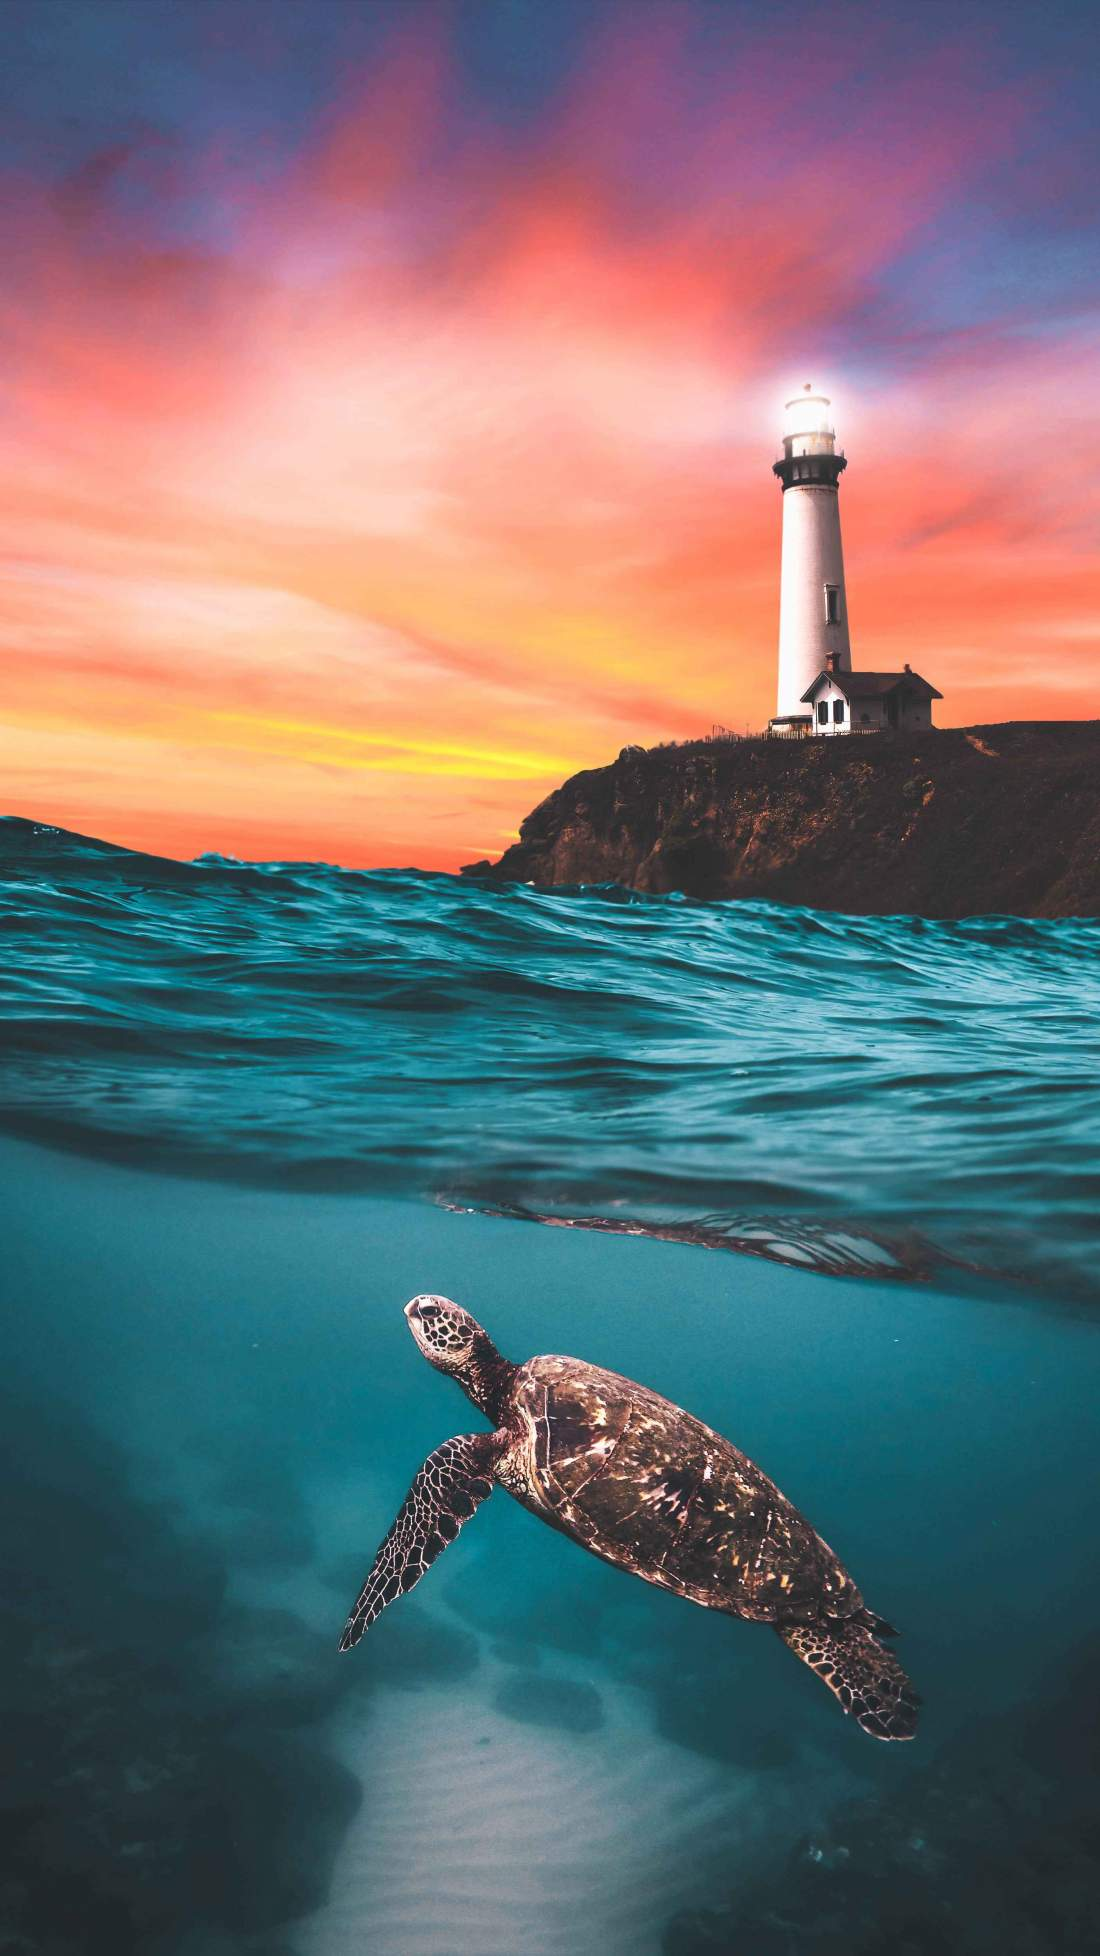 Animal Anime Girls Cute Wallpaper Turtle And The Lighthouse Iphone Wallpaper Iphone Wallpapers